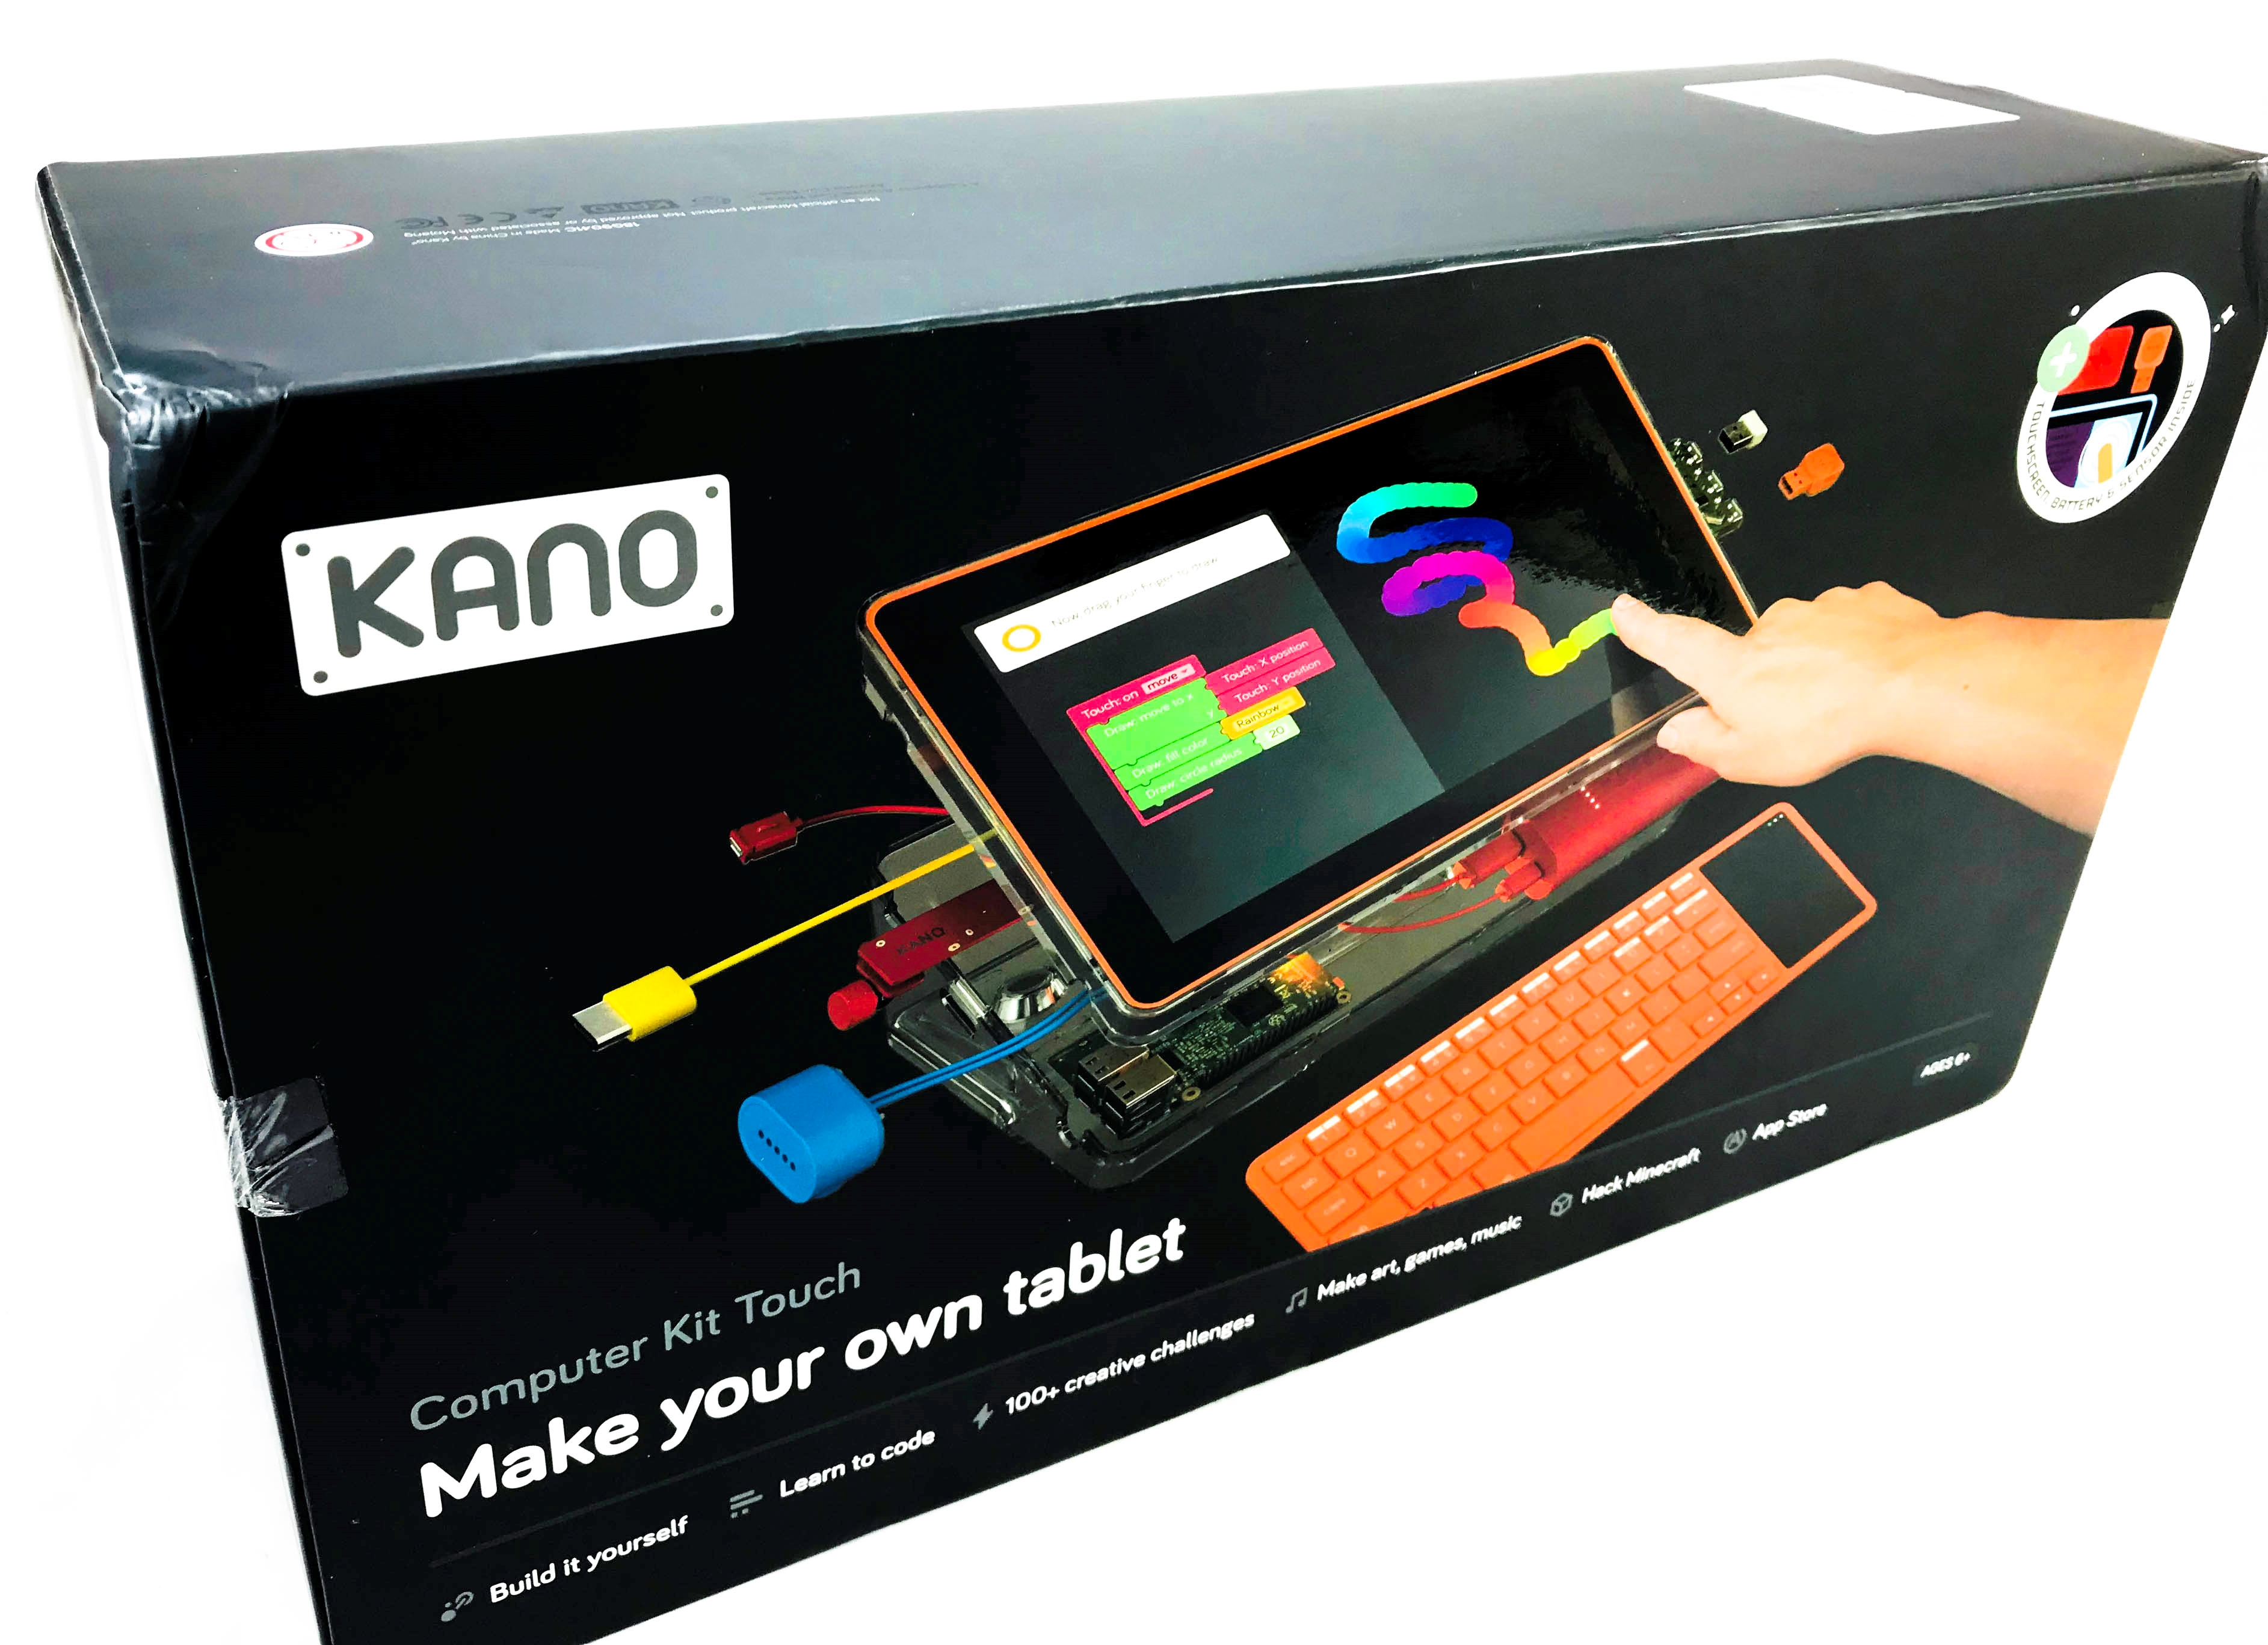 Kano Computer Kit Touch | My Helpful Hints | Honest Reviews